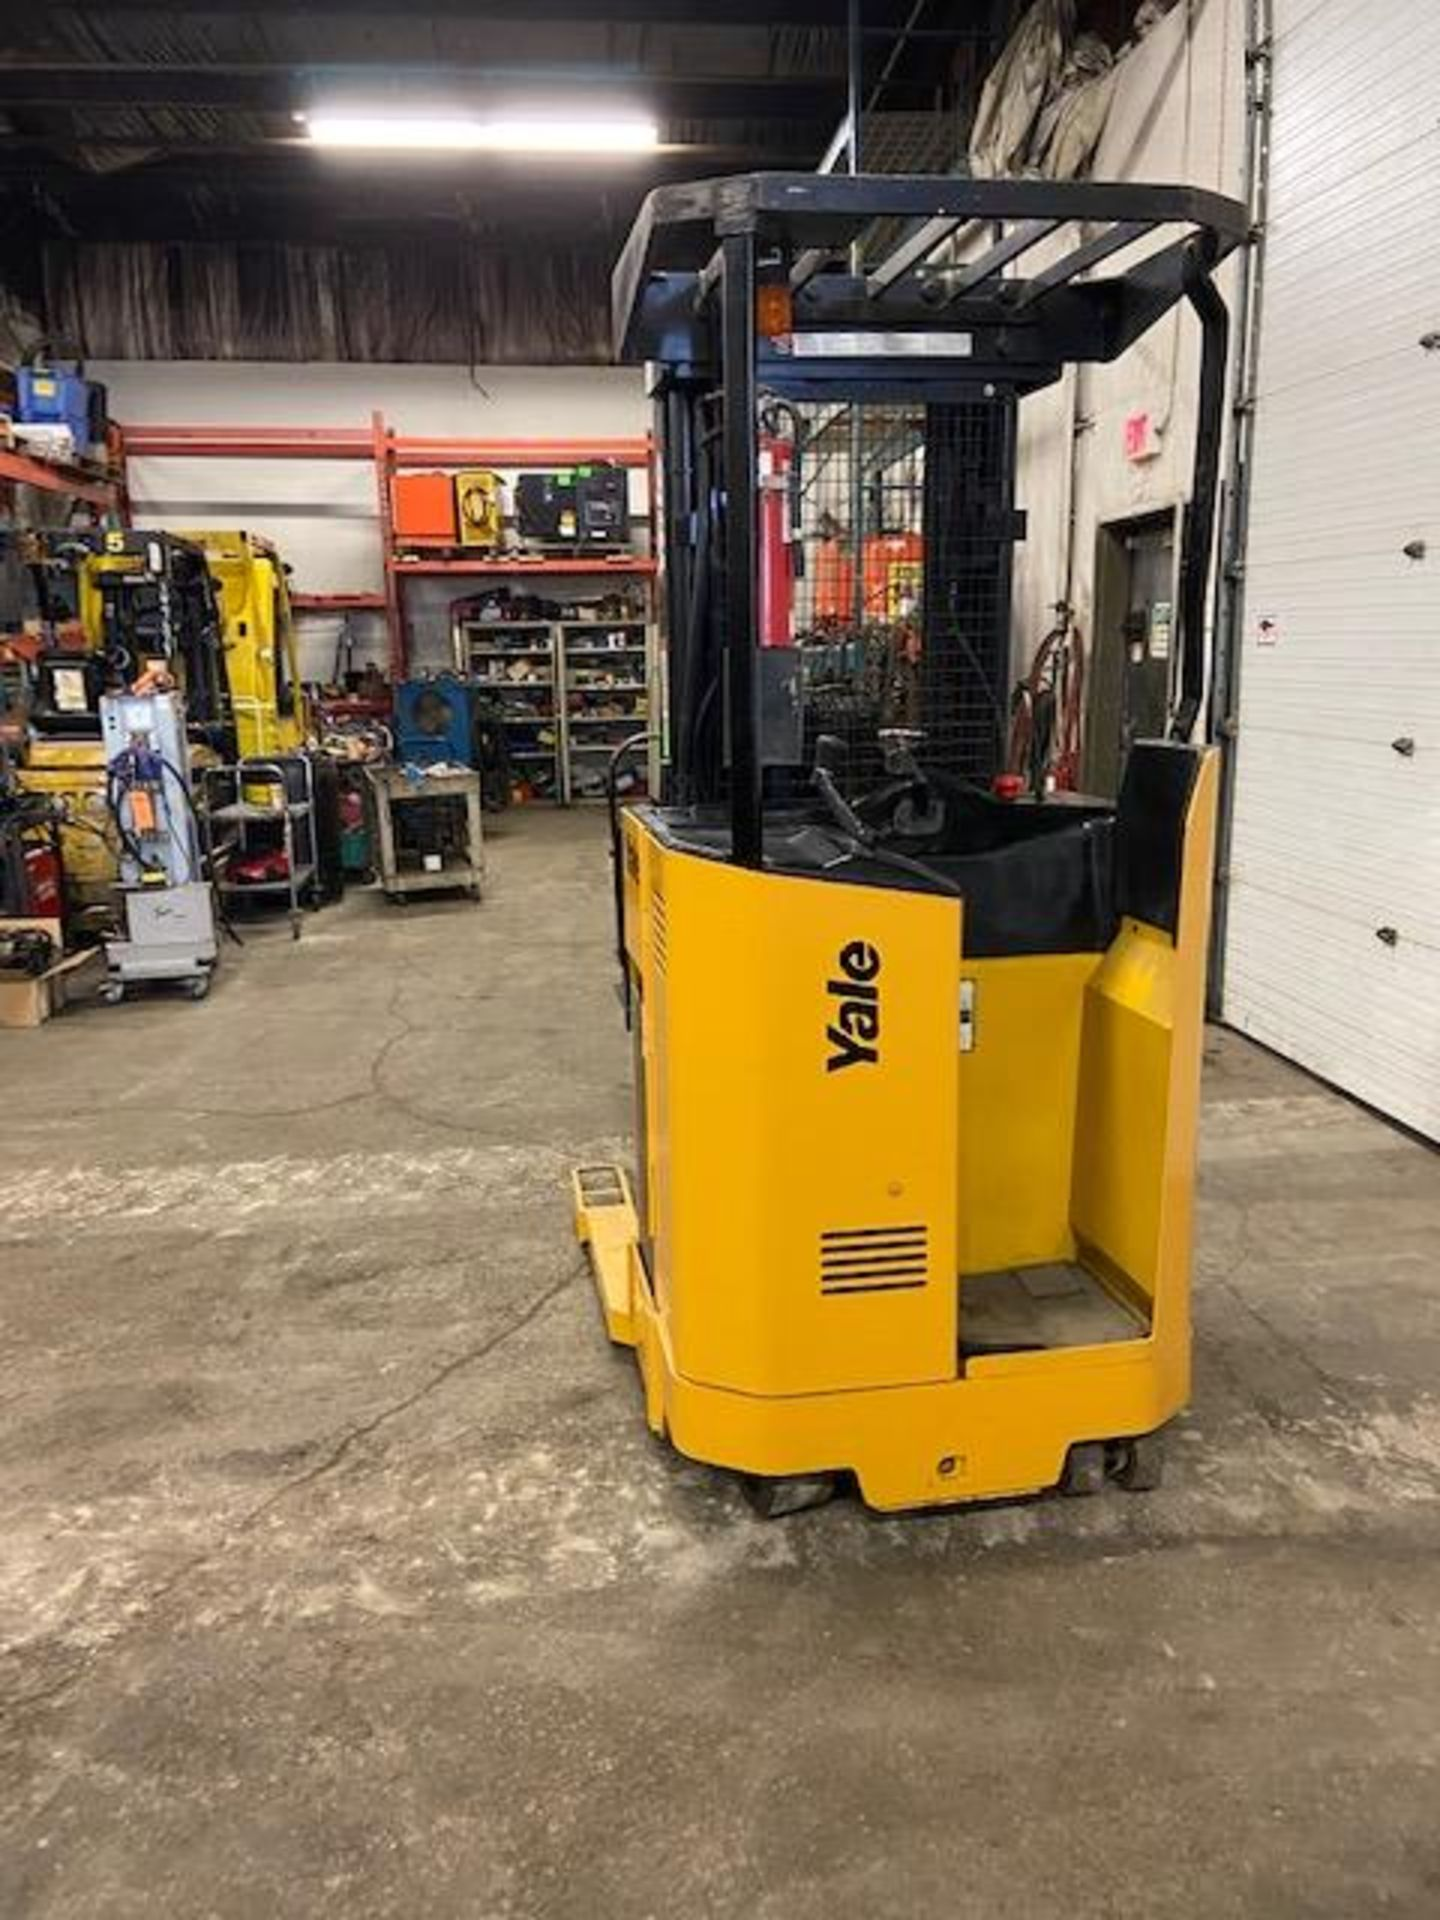 FREE CUSTOMS - Yale Reach Truck Pallet Lifter REACH TRUCK electric 4000lbs with sideshift 3-stage - Image 3 of 3